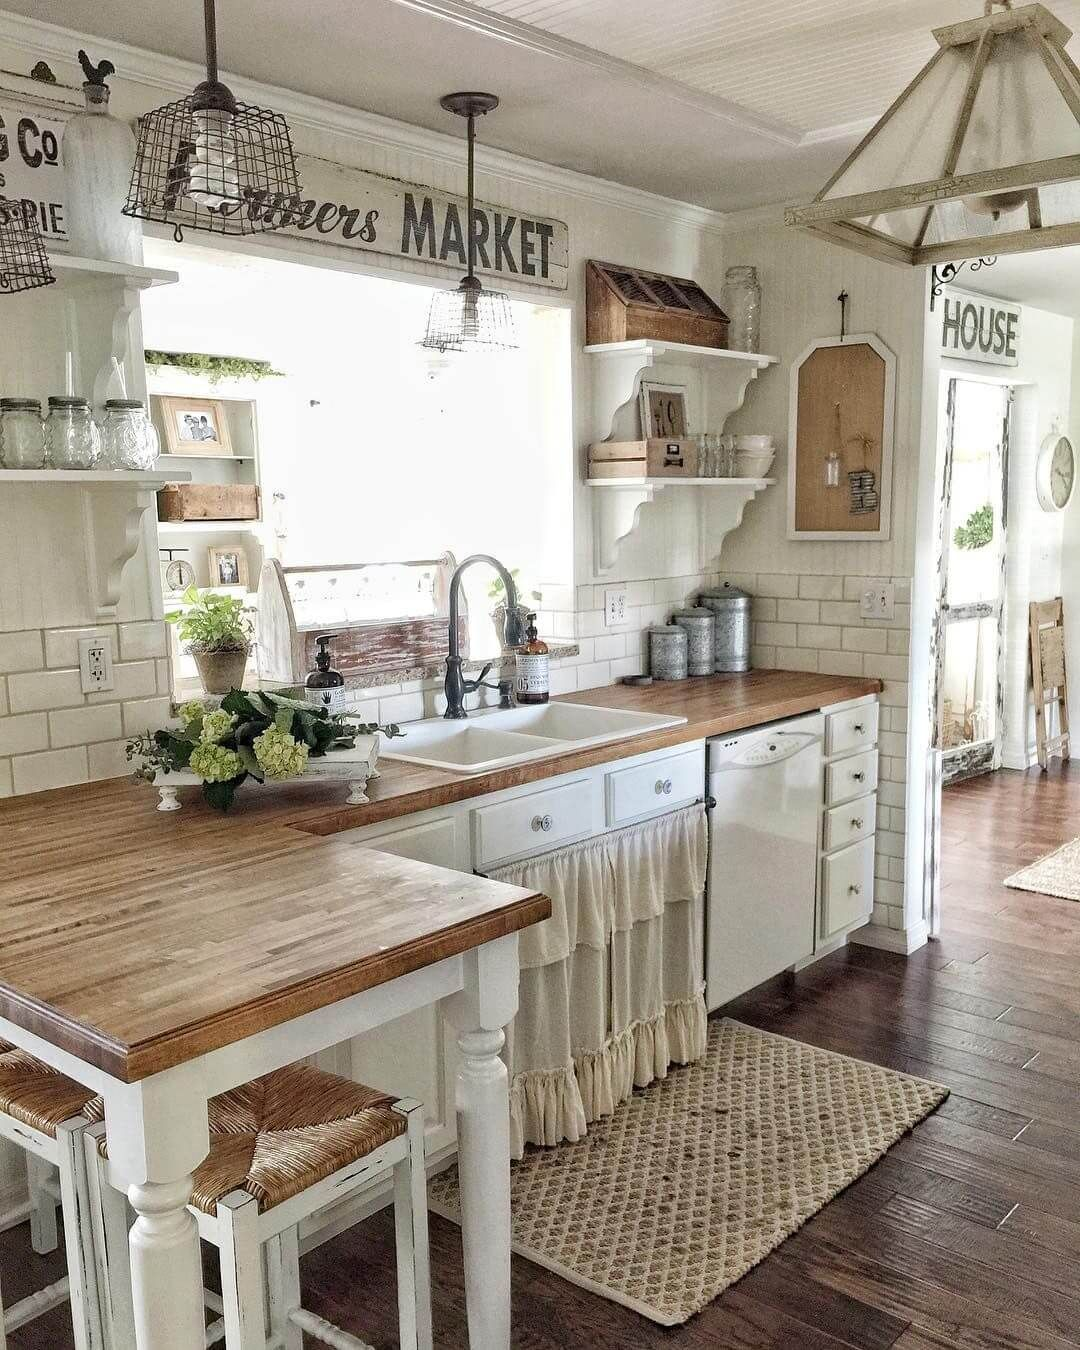 35 farmhouse kitchen cupboard Ideas for a warm and inviting kitchen design in your home - home decors